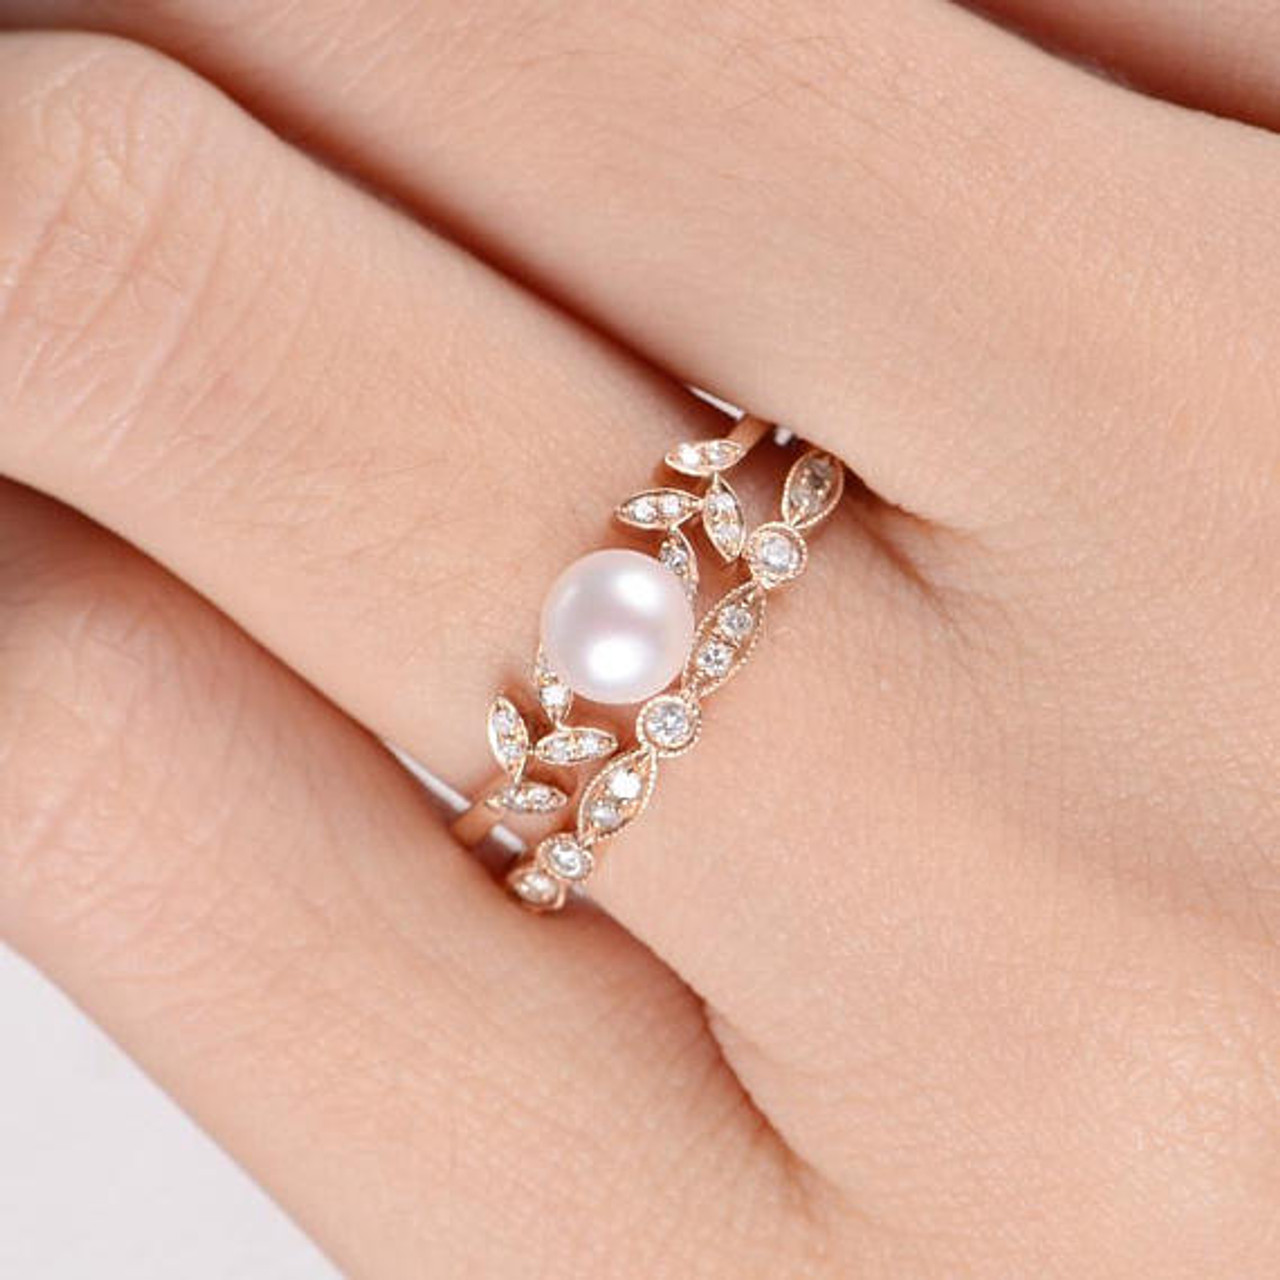 sidari jewellery and hzhyl ring raleigh pearl engagement diamond rings quercus halo bridal gold